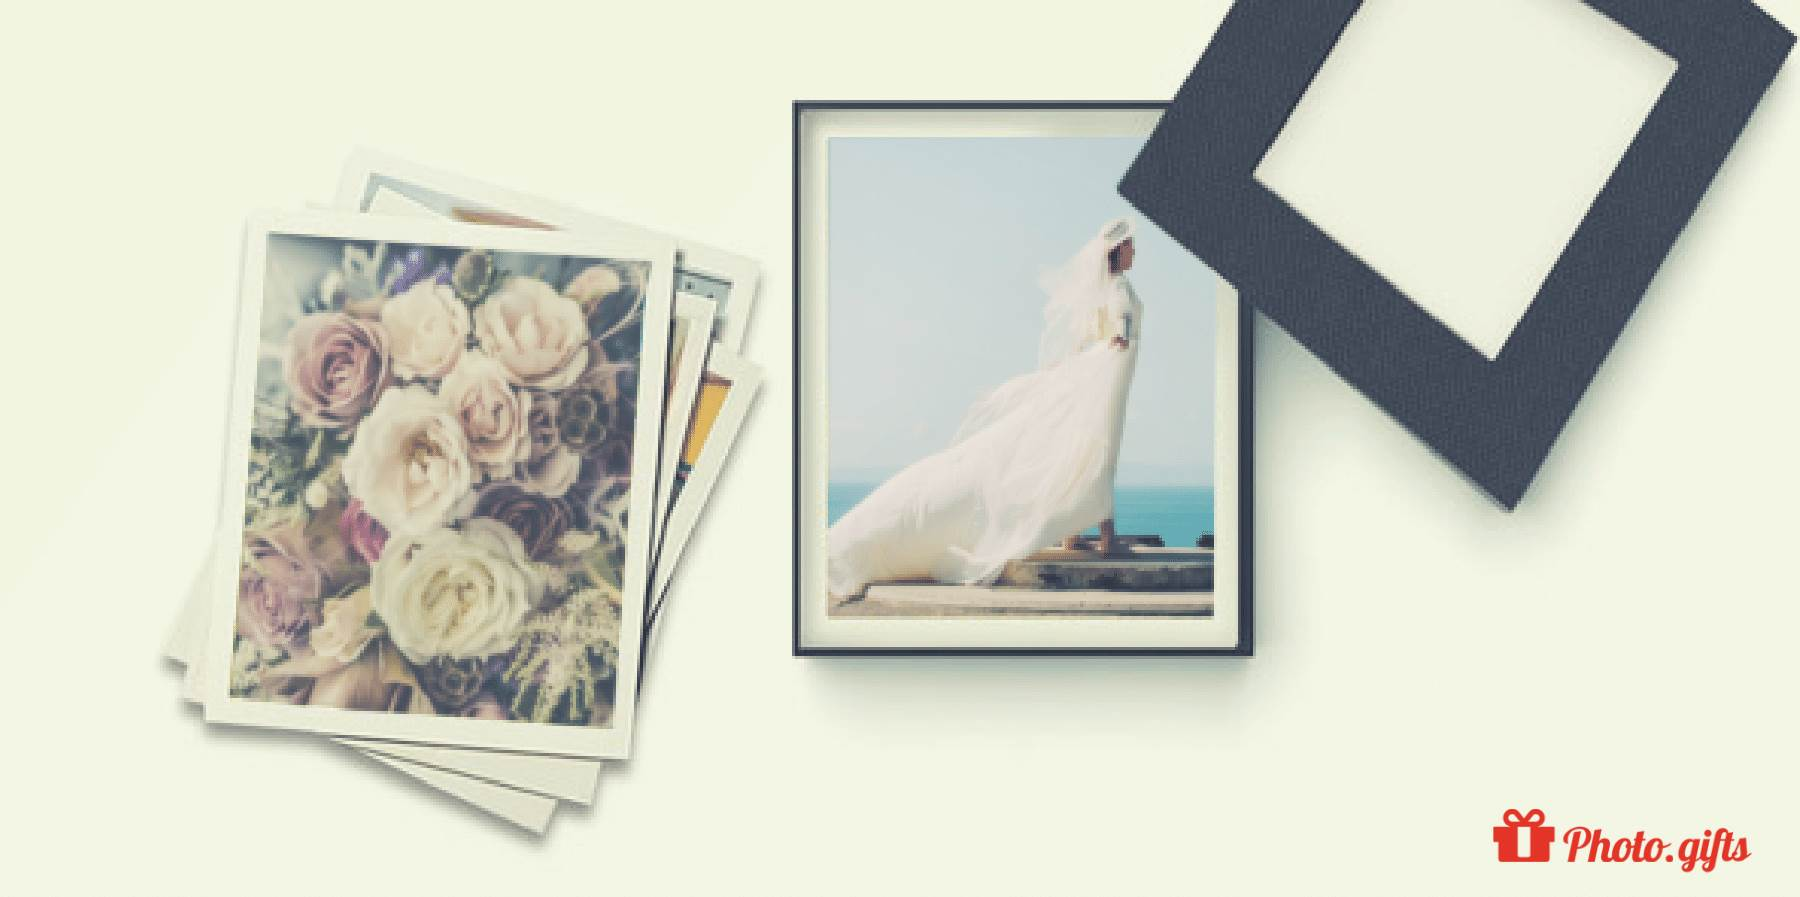 Share your favourite wedding photographs in a Photo Box